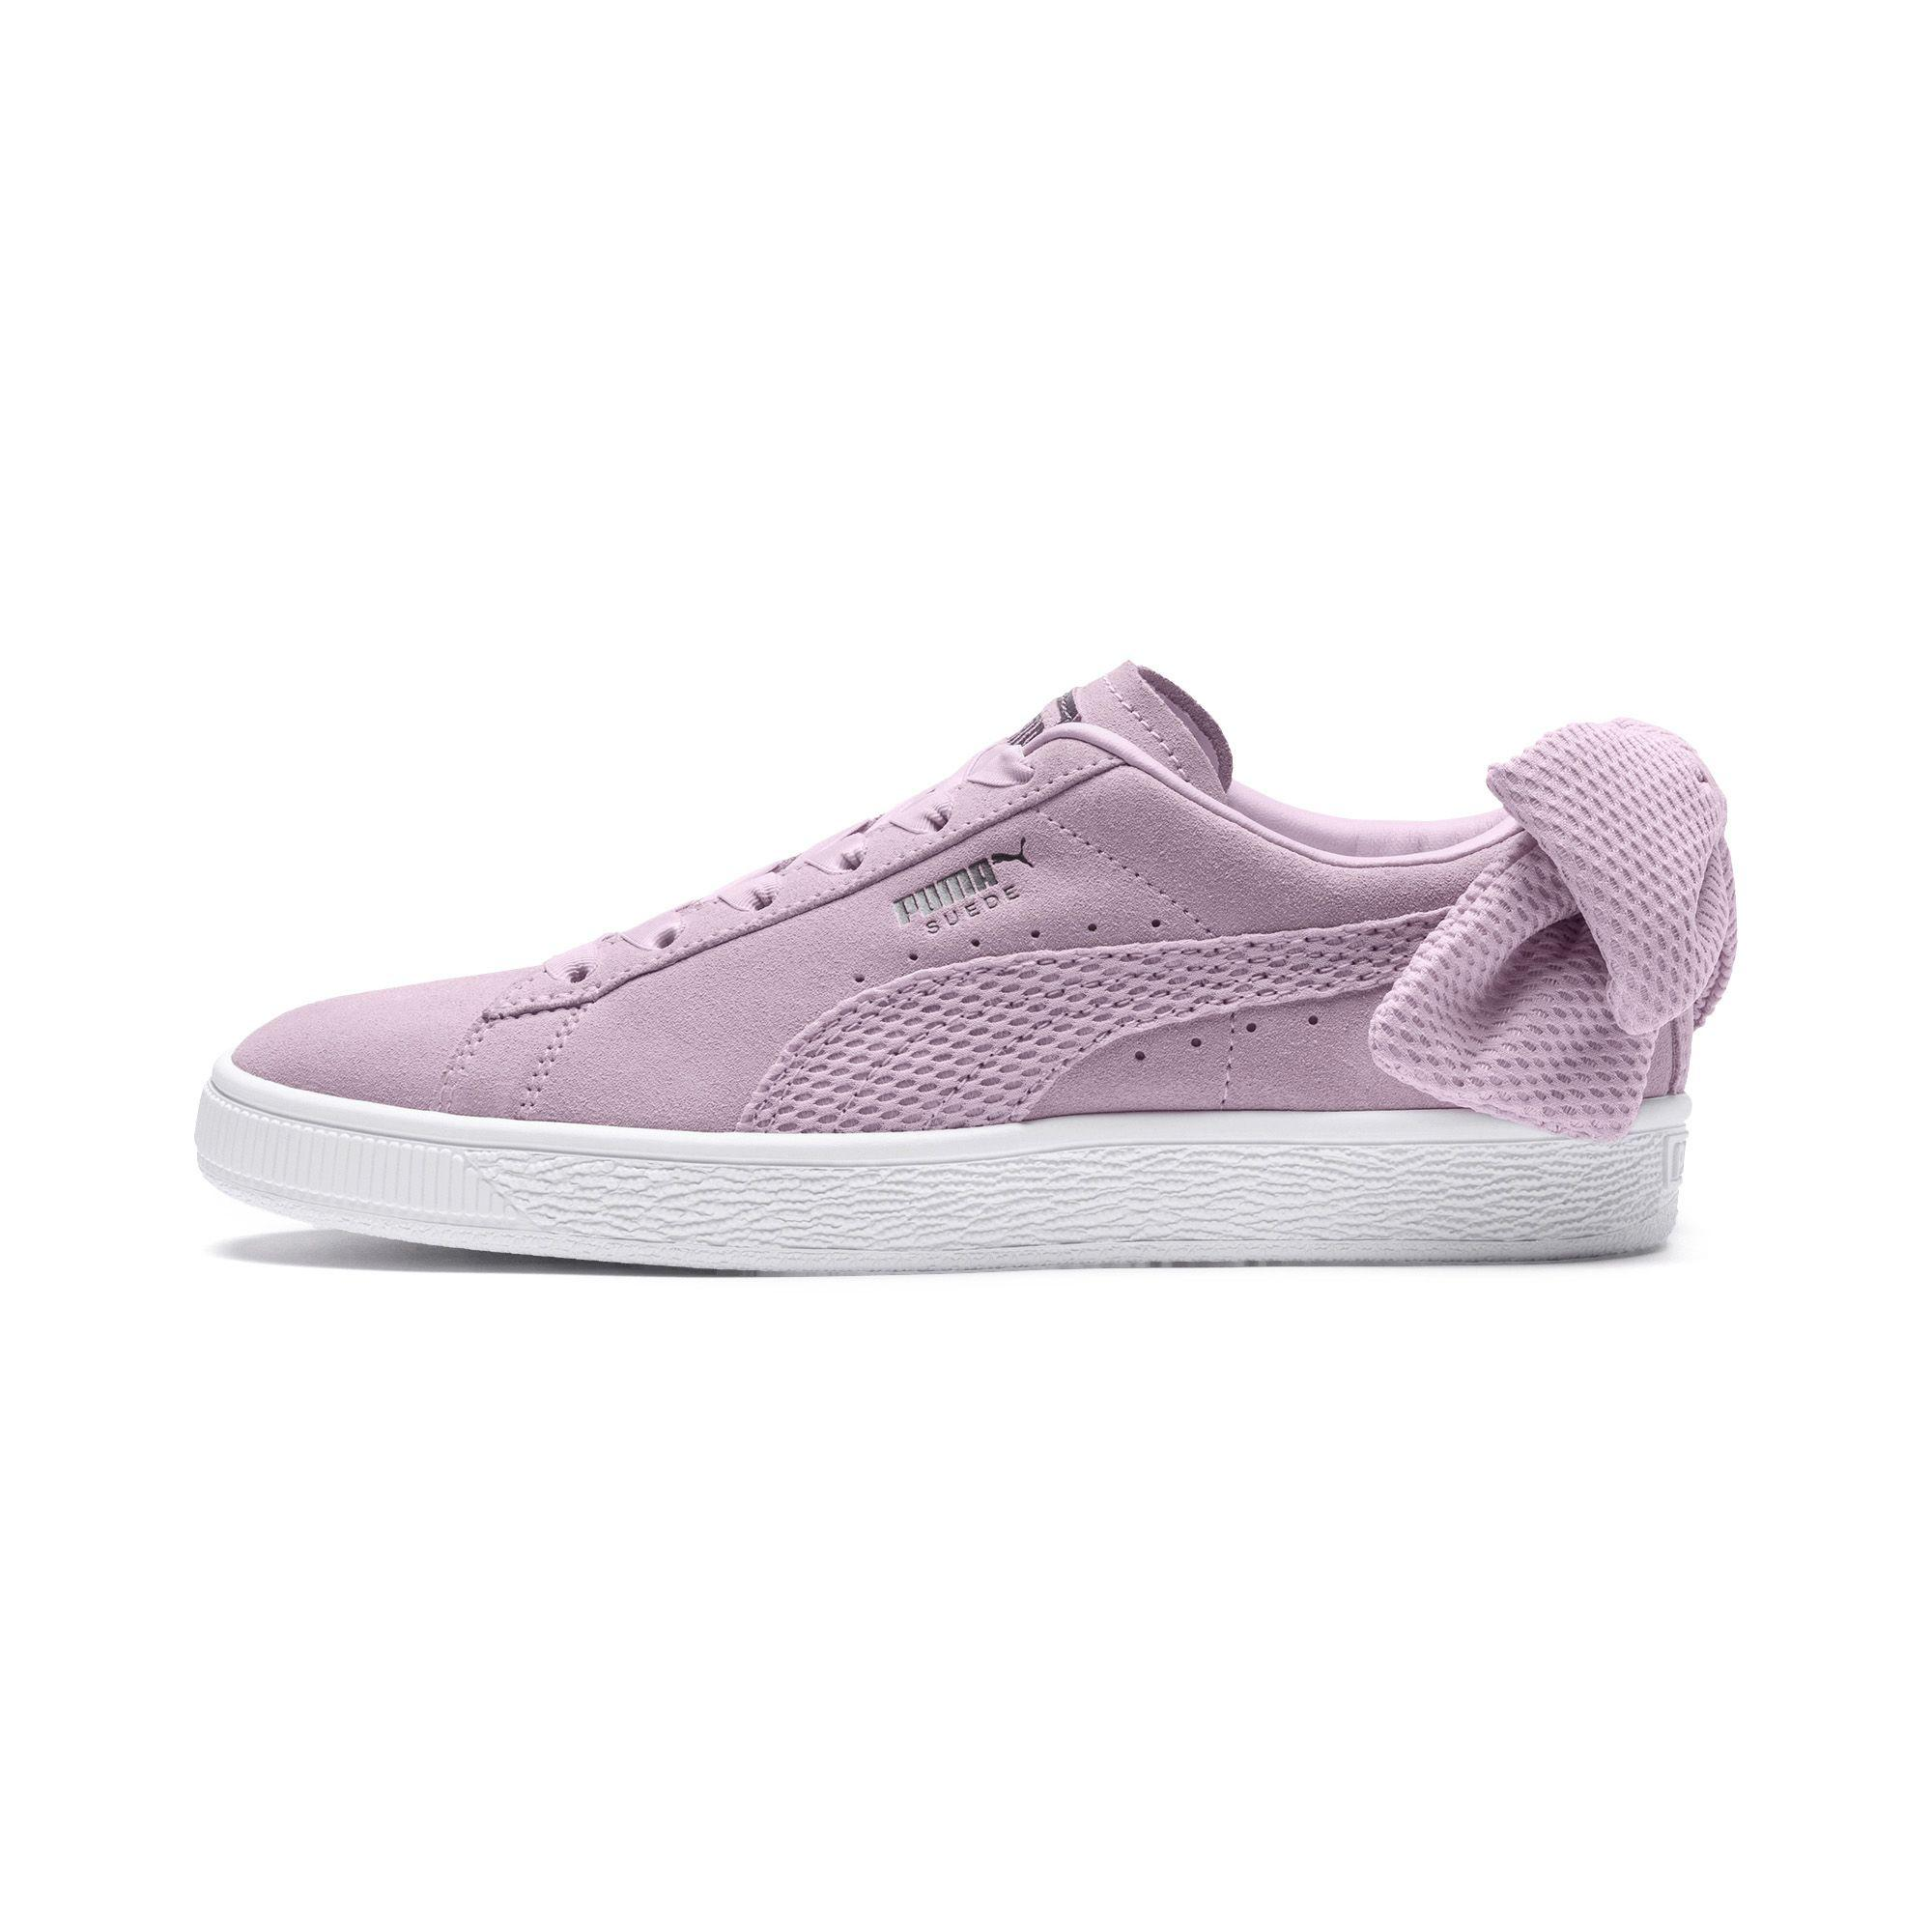 Lyst - PUMA Suede Bow Uprising Women s Sneakers - Save 10% b0dd88873